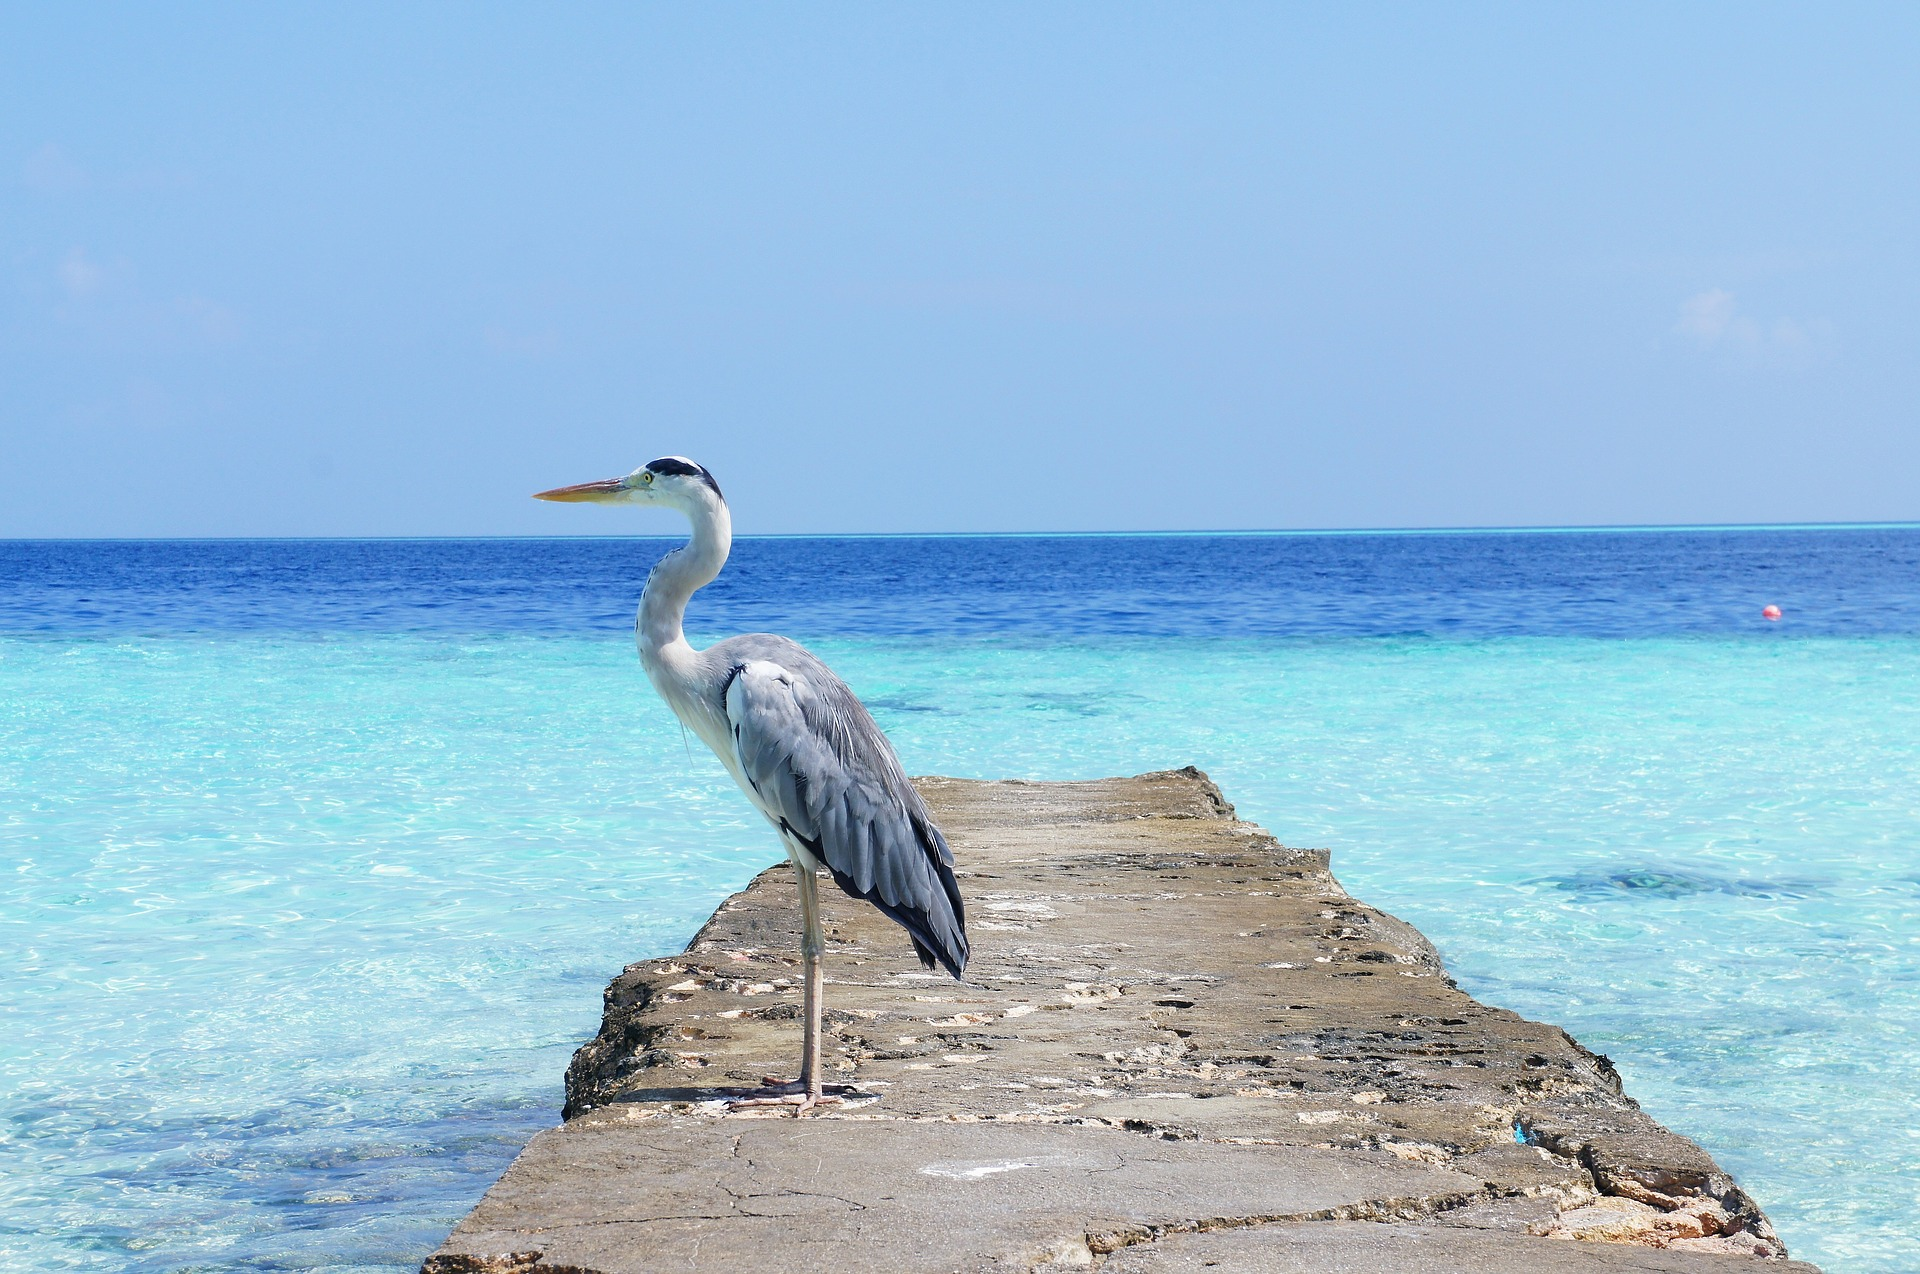 A heron in the Maldives